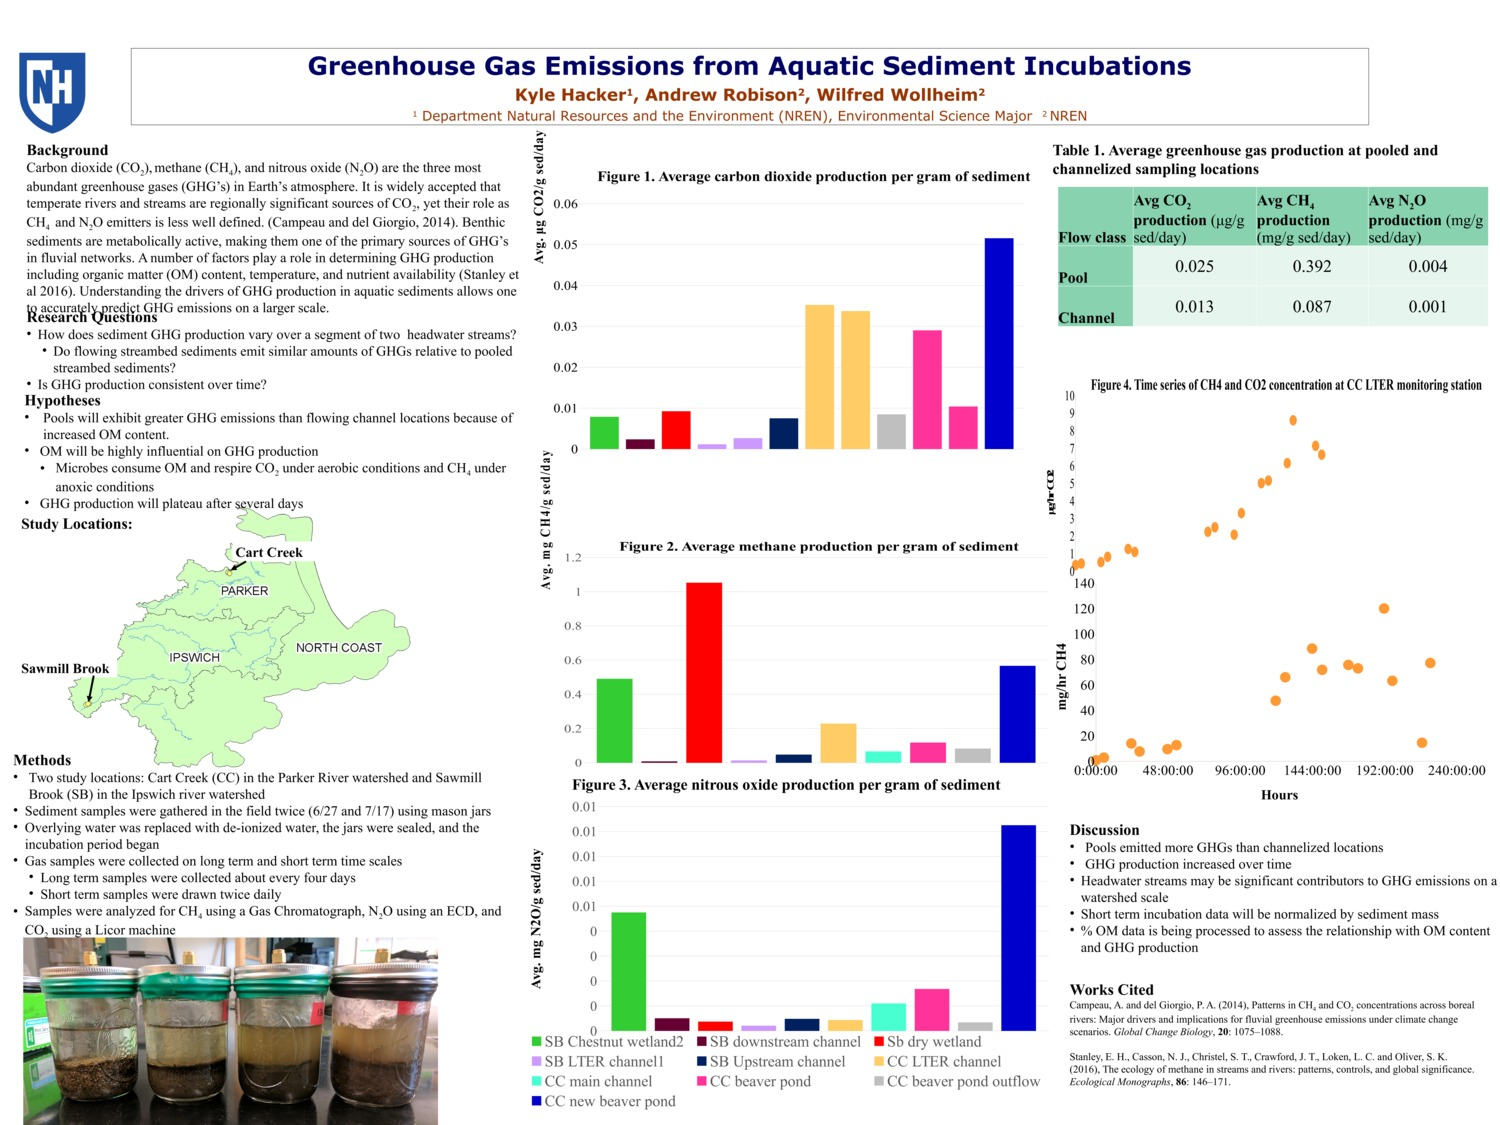 Greenhouse Gas Emissions From Aquatic Sediment Incubations by kh2015